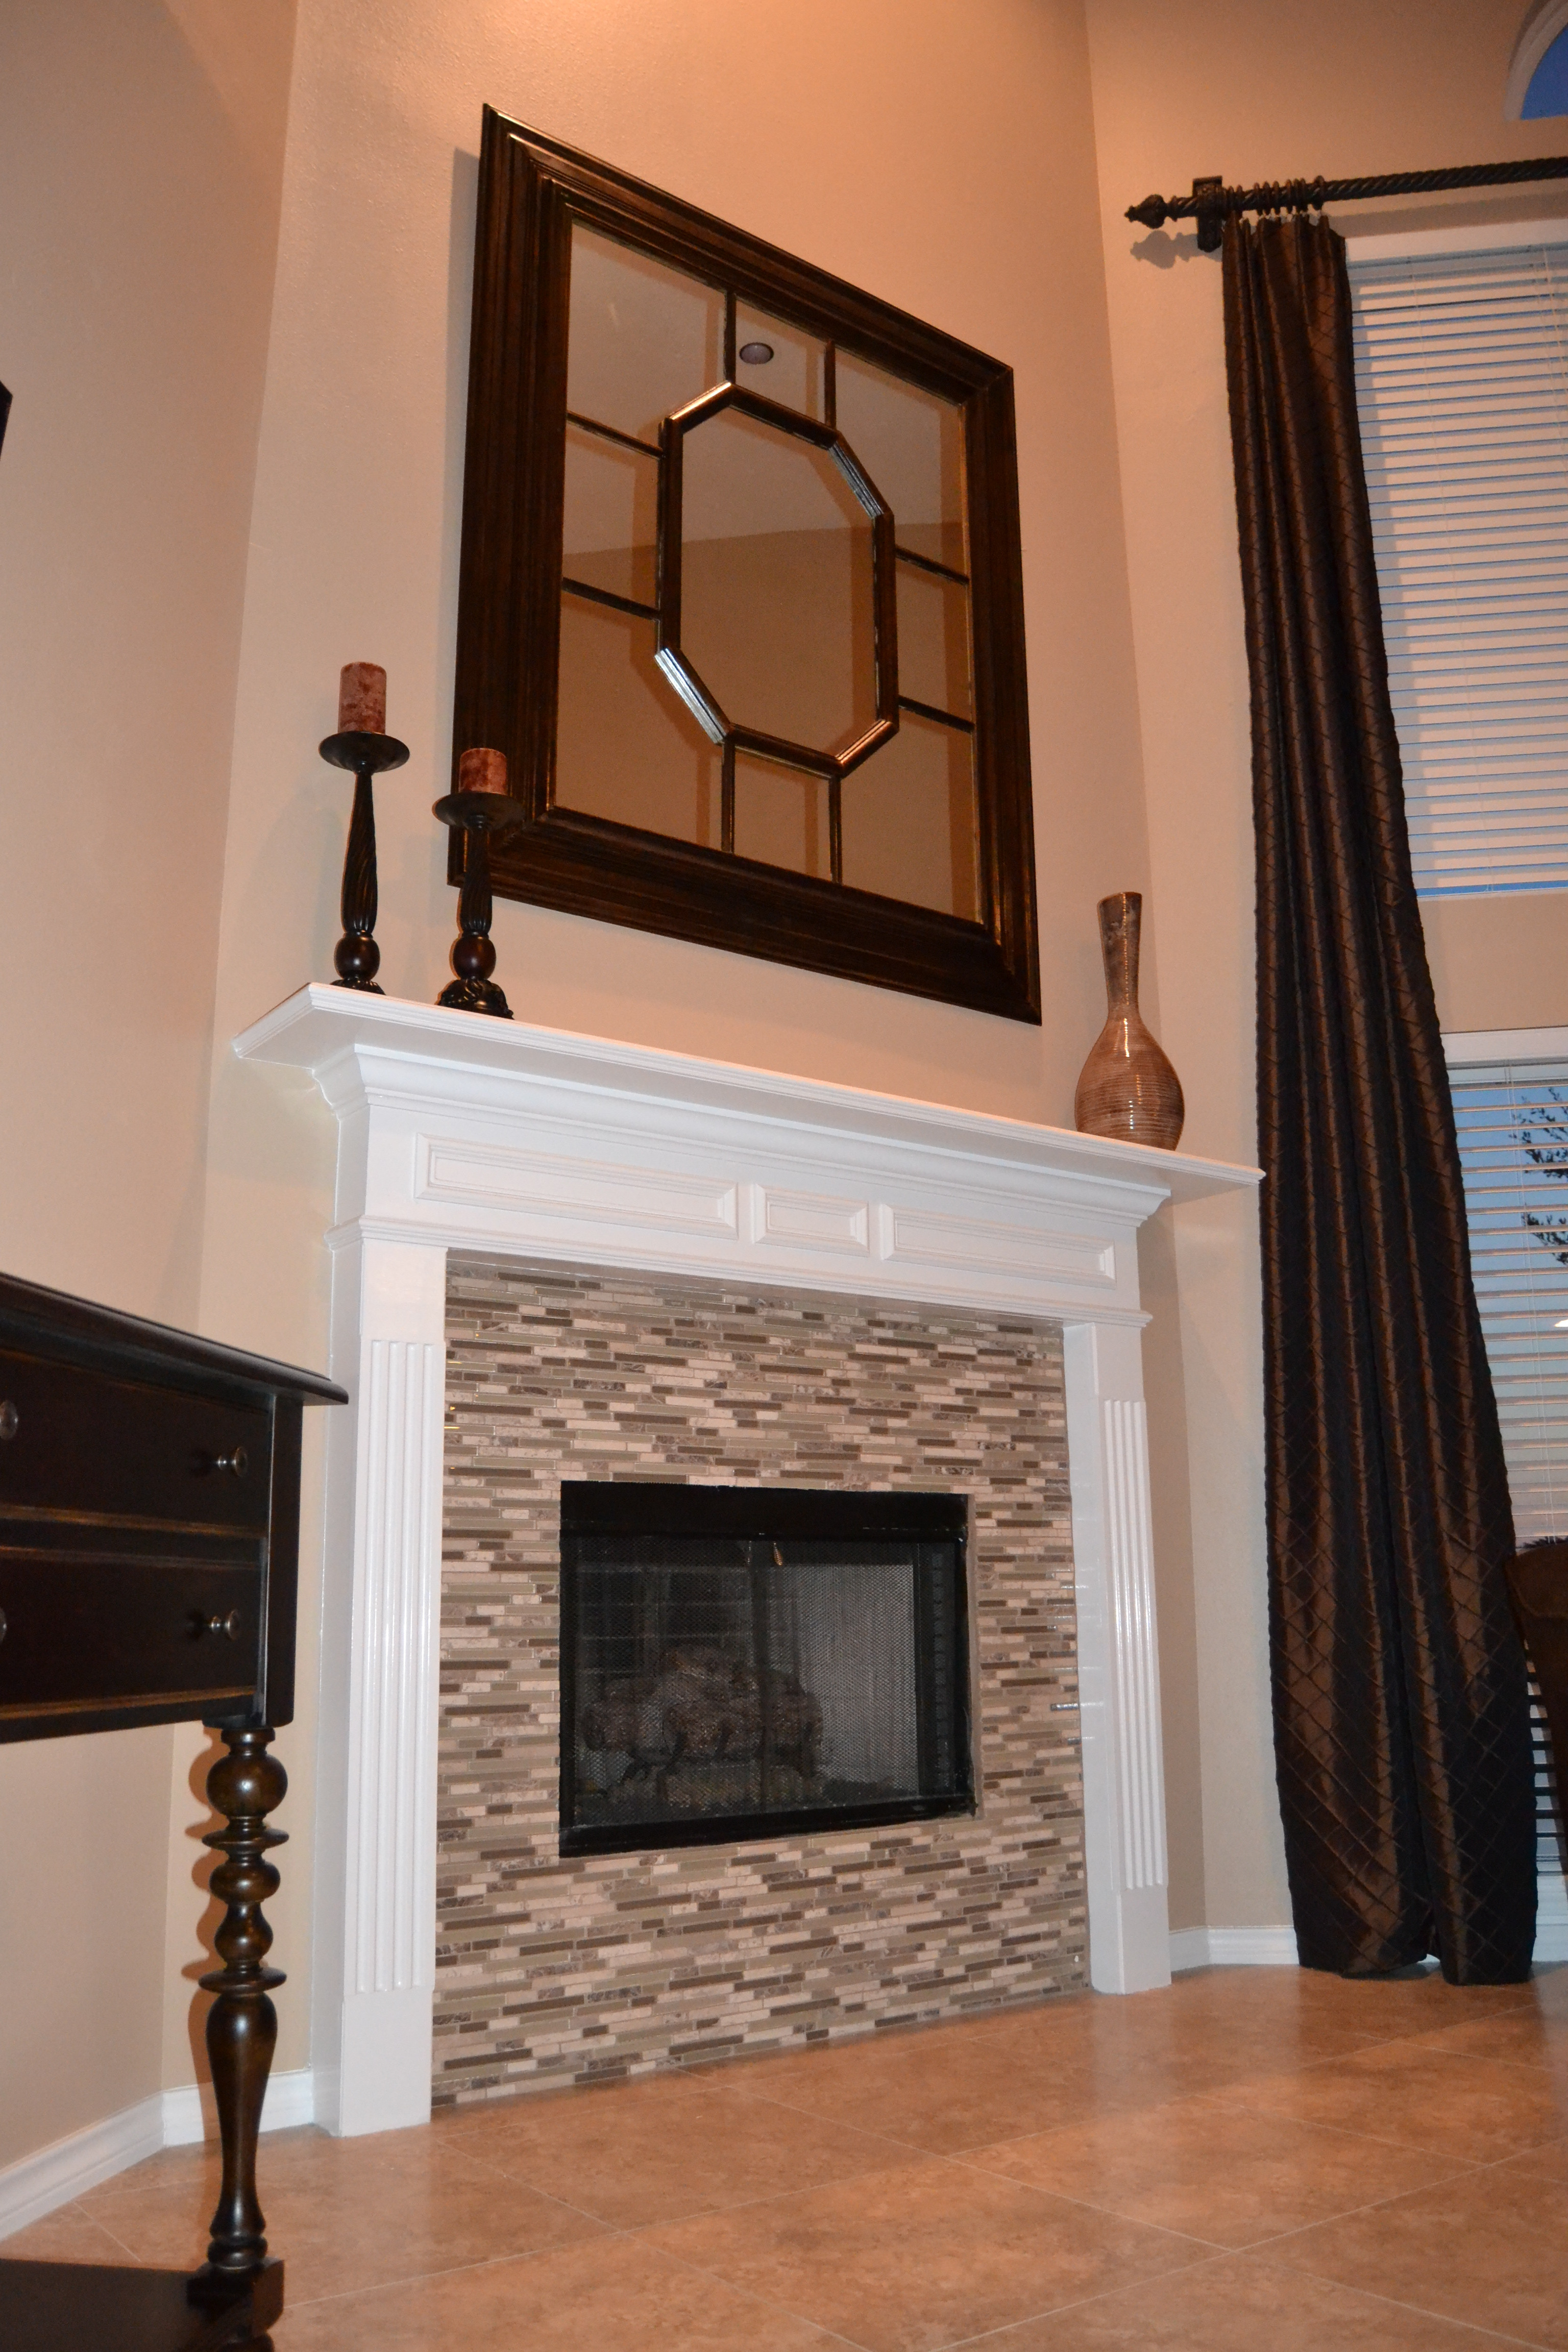 Best ideas about Tile For Fireplace . Save or Pin glass mosaic tile fireplace Now.